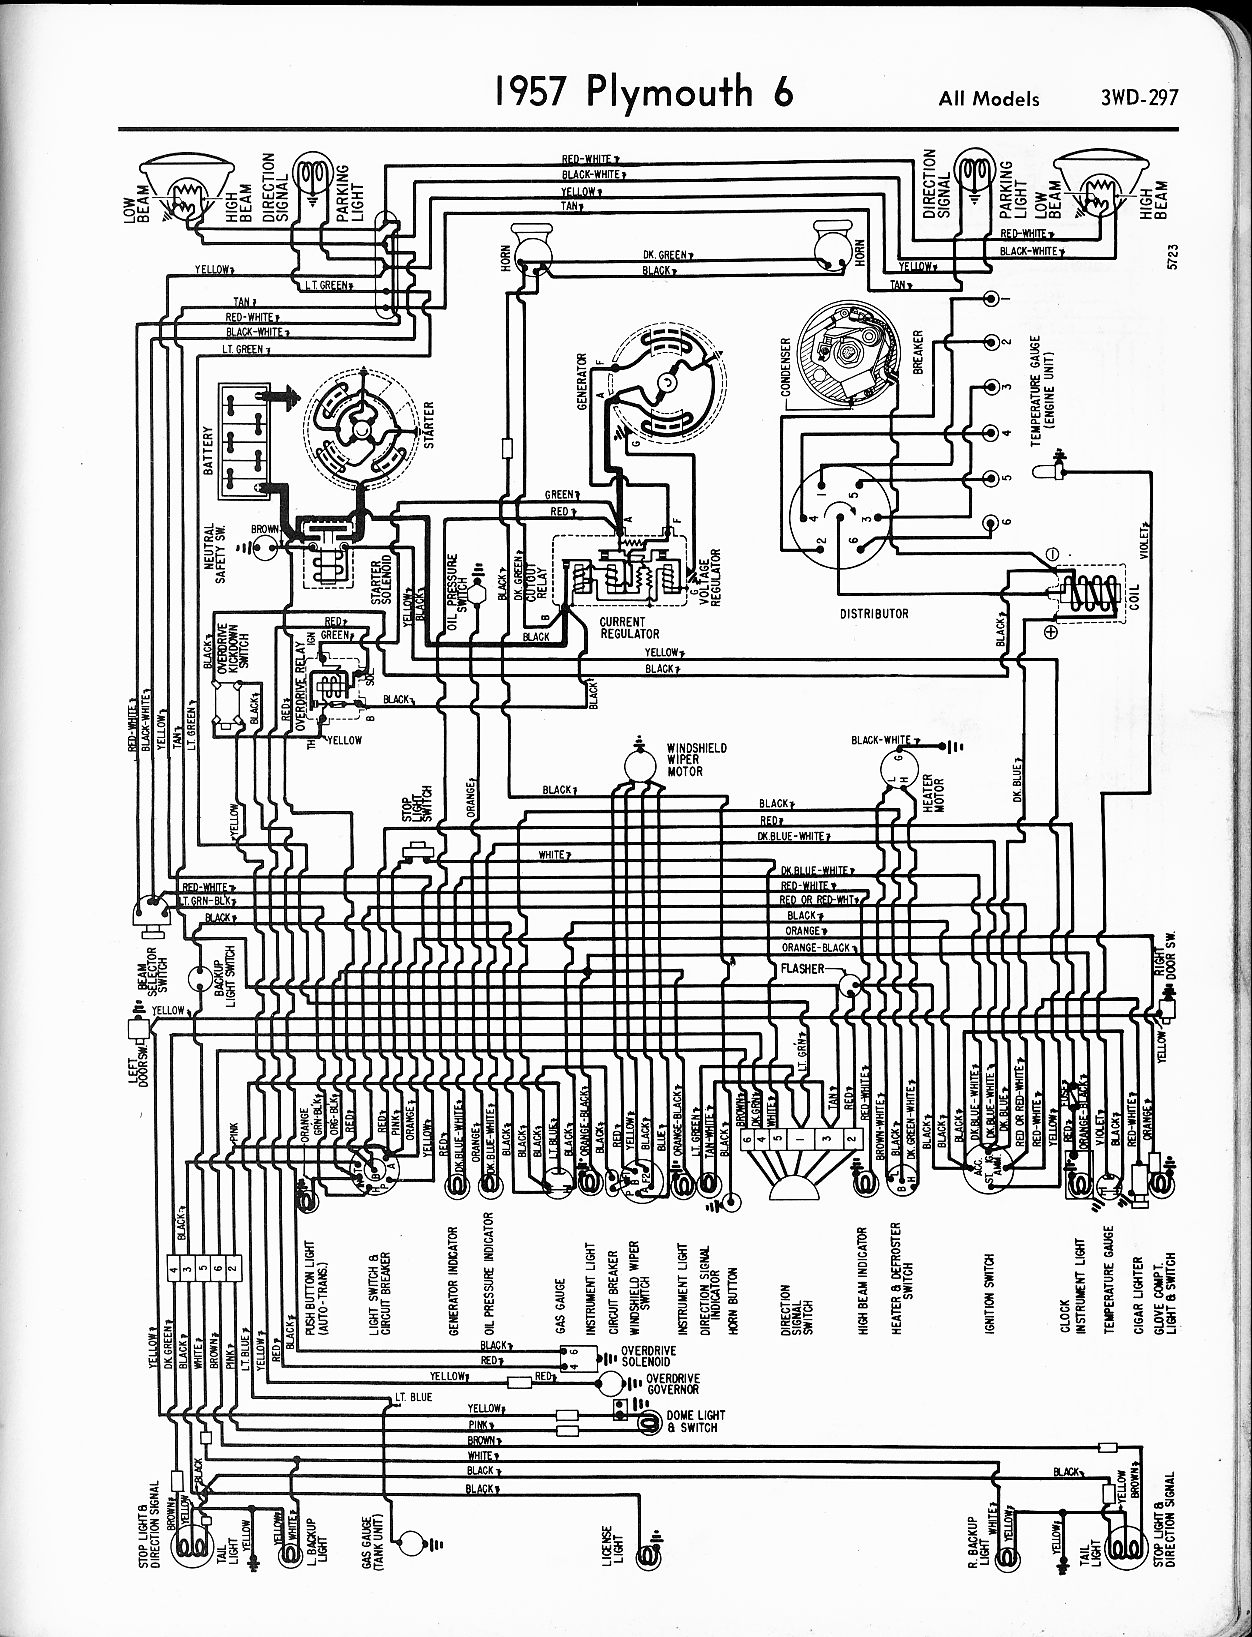 1955 plymouth wire harness diagram wiring diagram 2000 cadillac deville wiring diagram 1955 plymouth belvedere wiring diagram